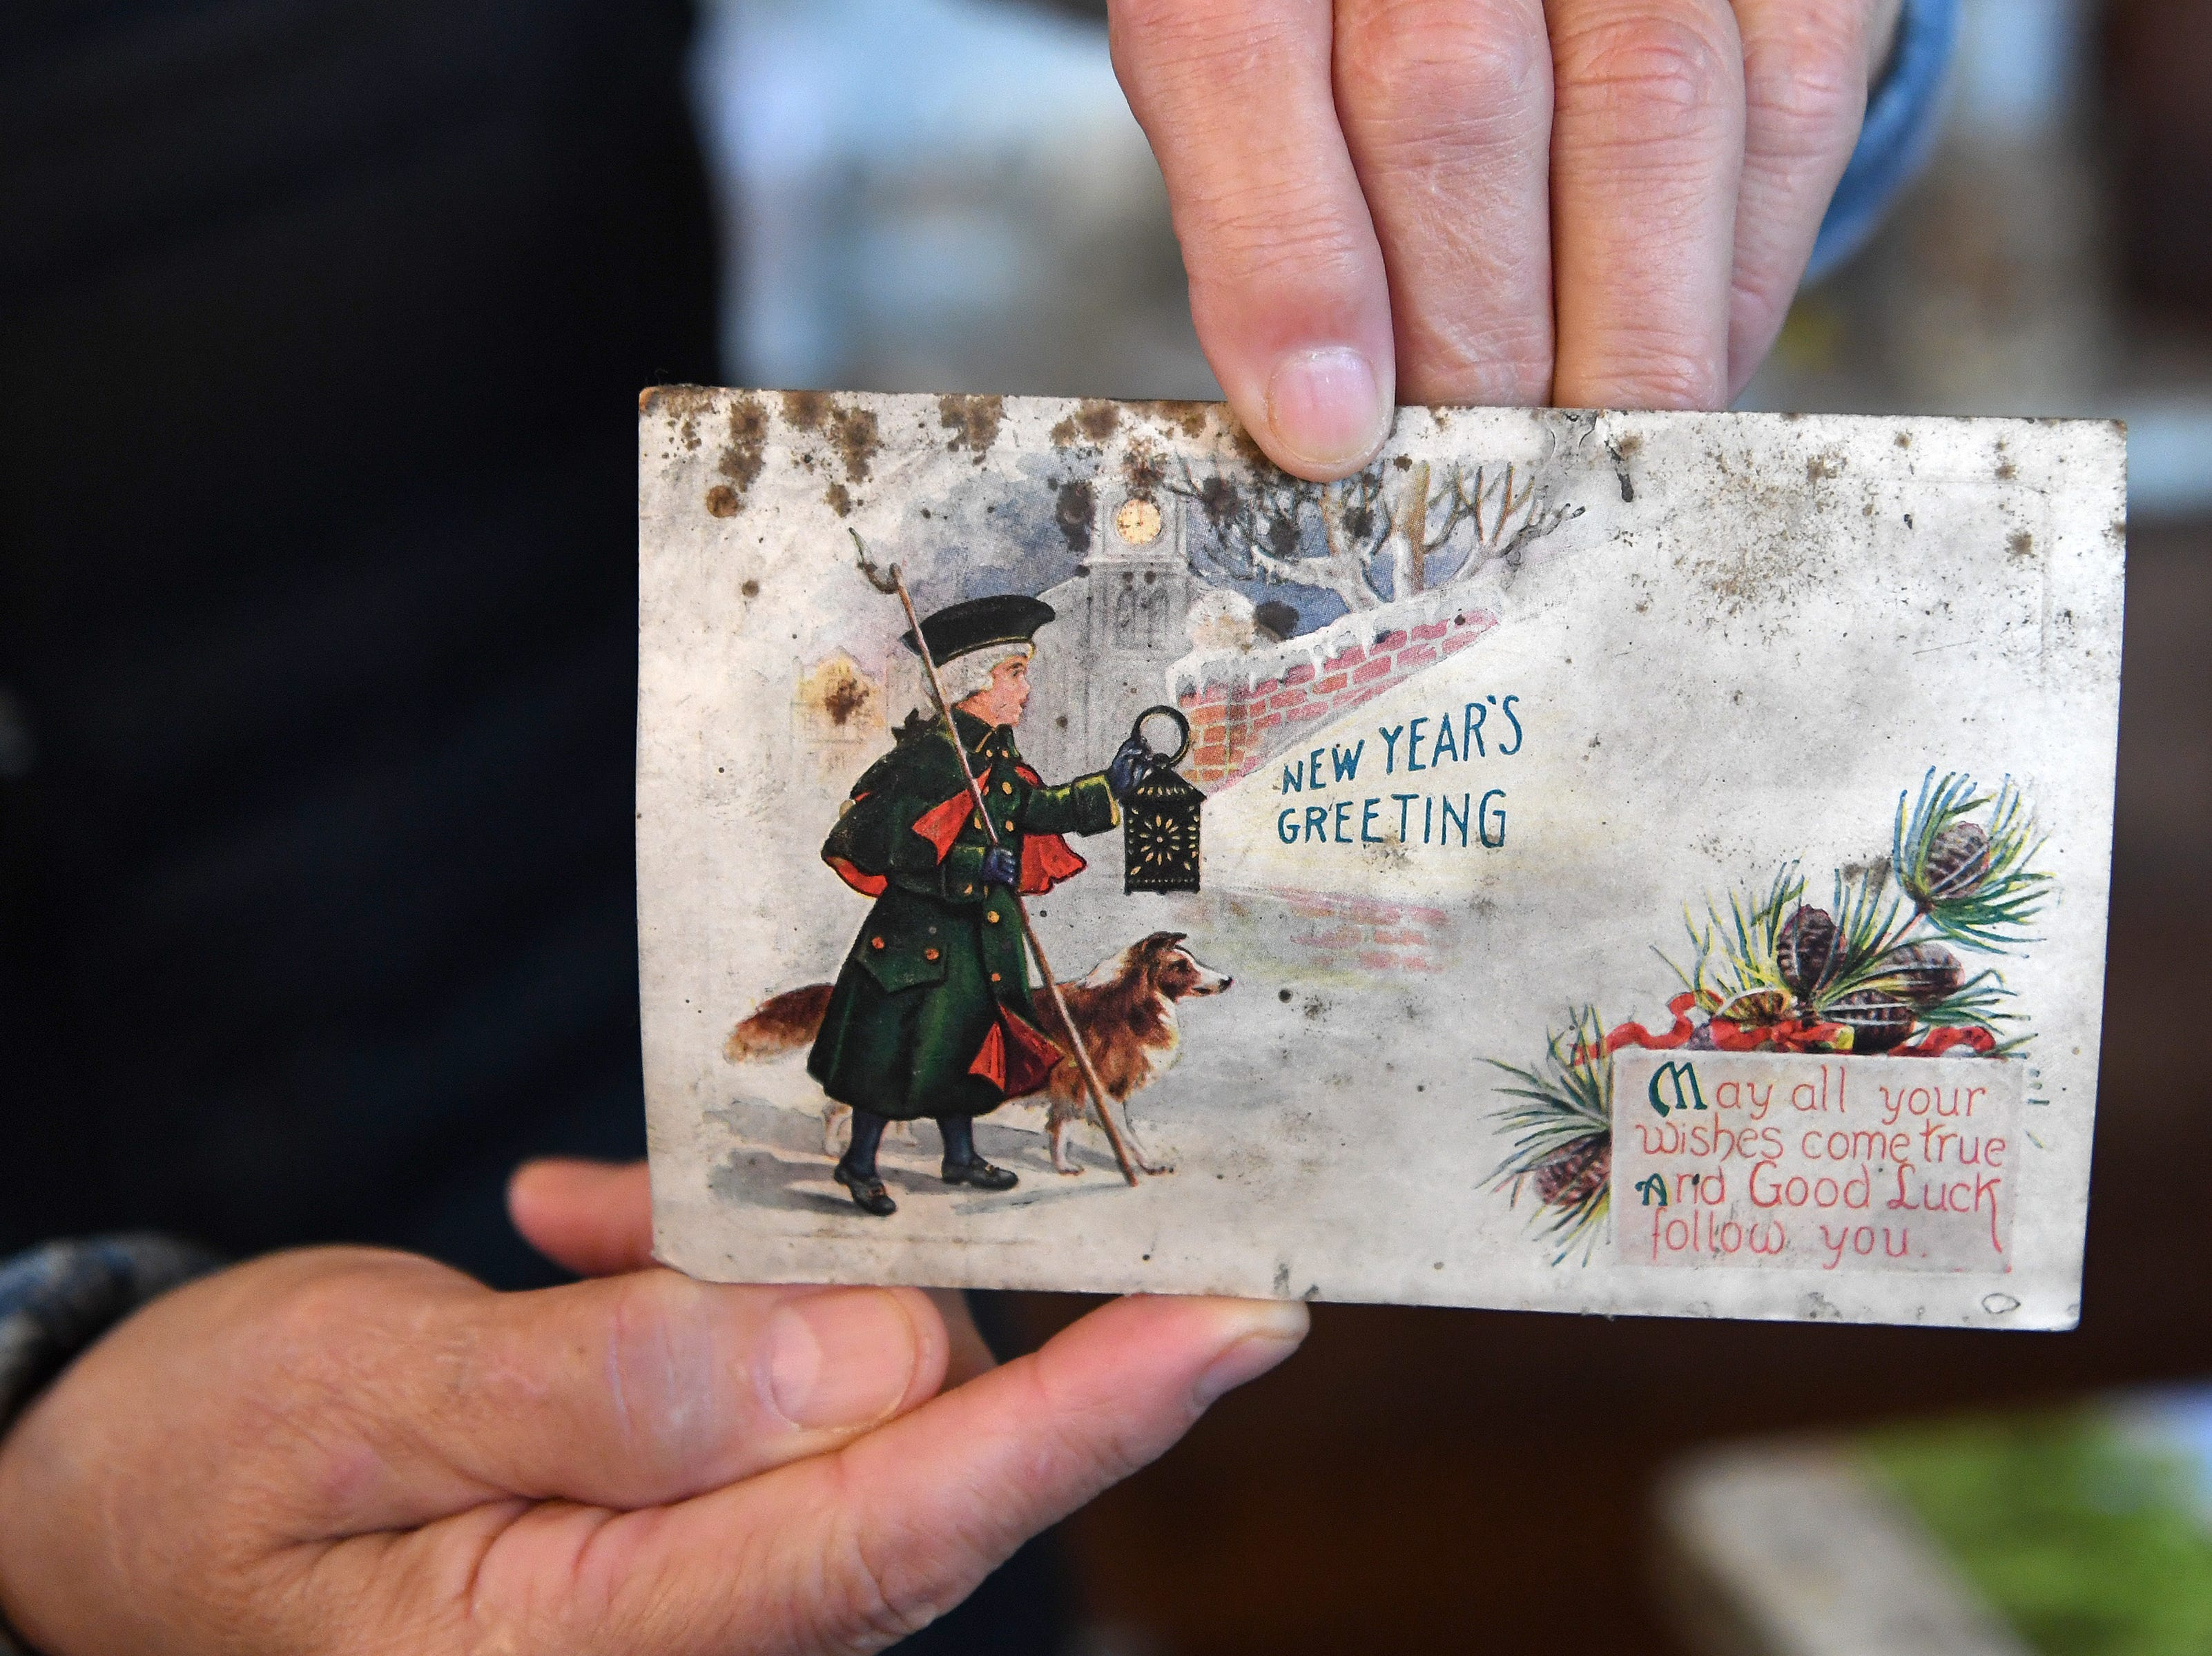 Linda Voorhees holds a New Year's postcard found in the garage when they remodeled their Montford home postmarked Jan. 1, 1923.